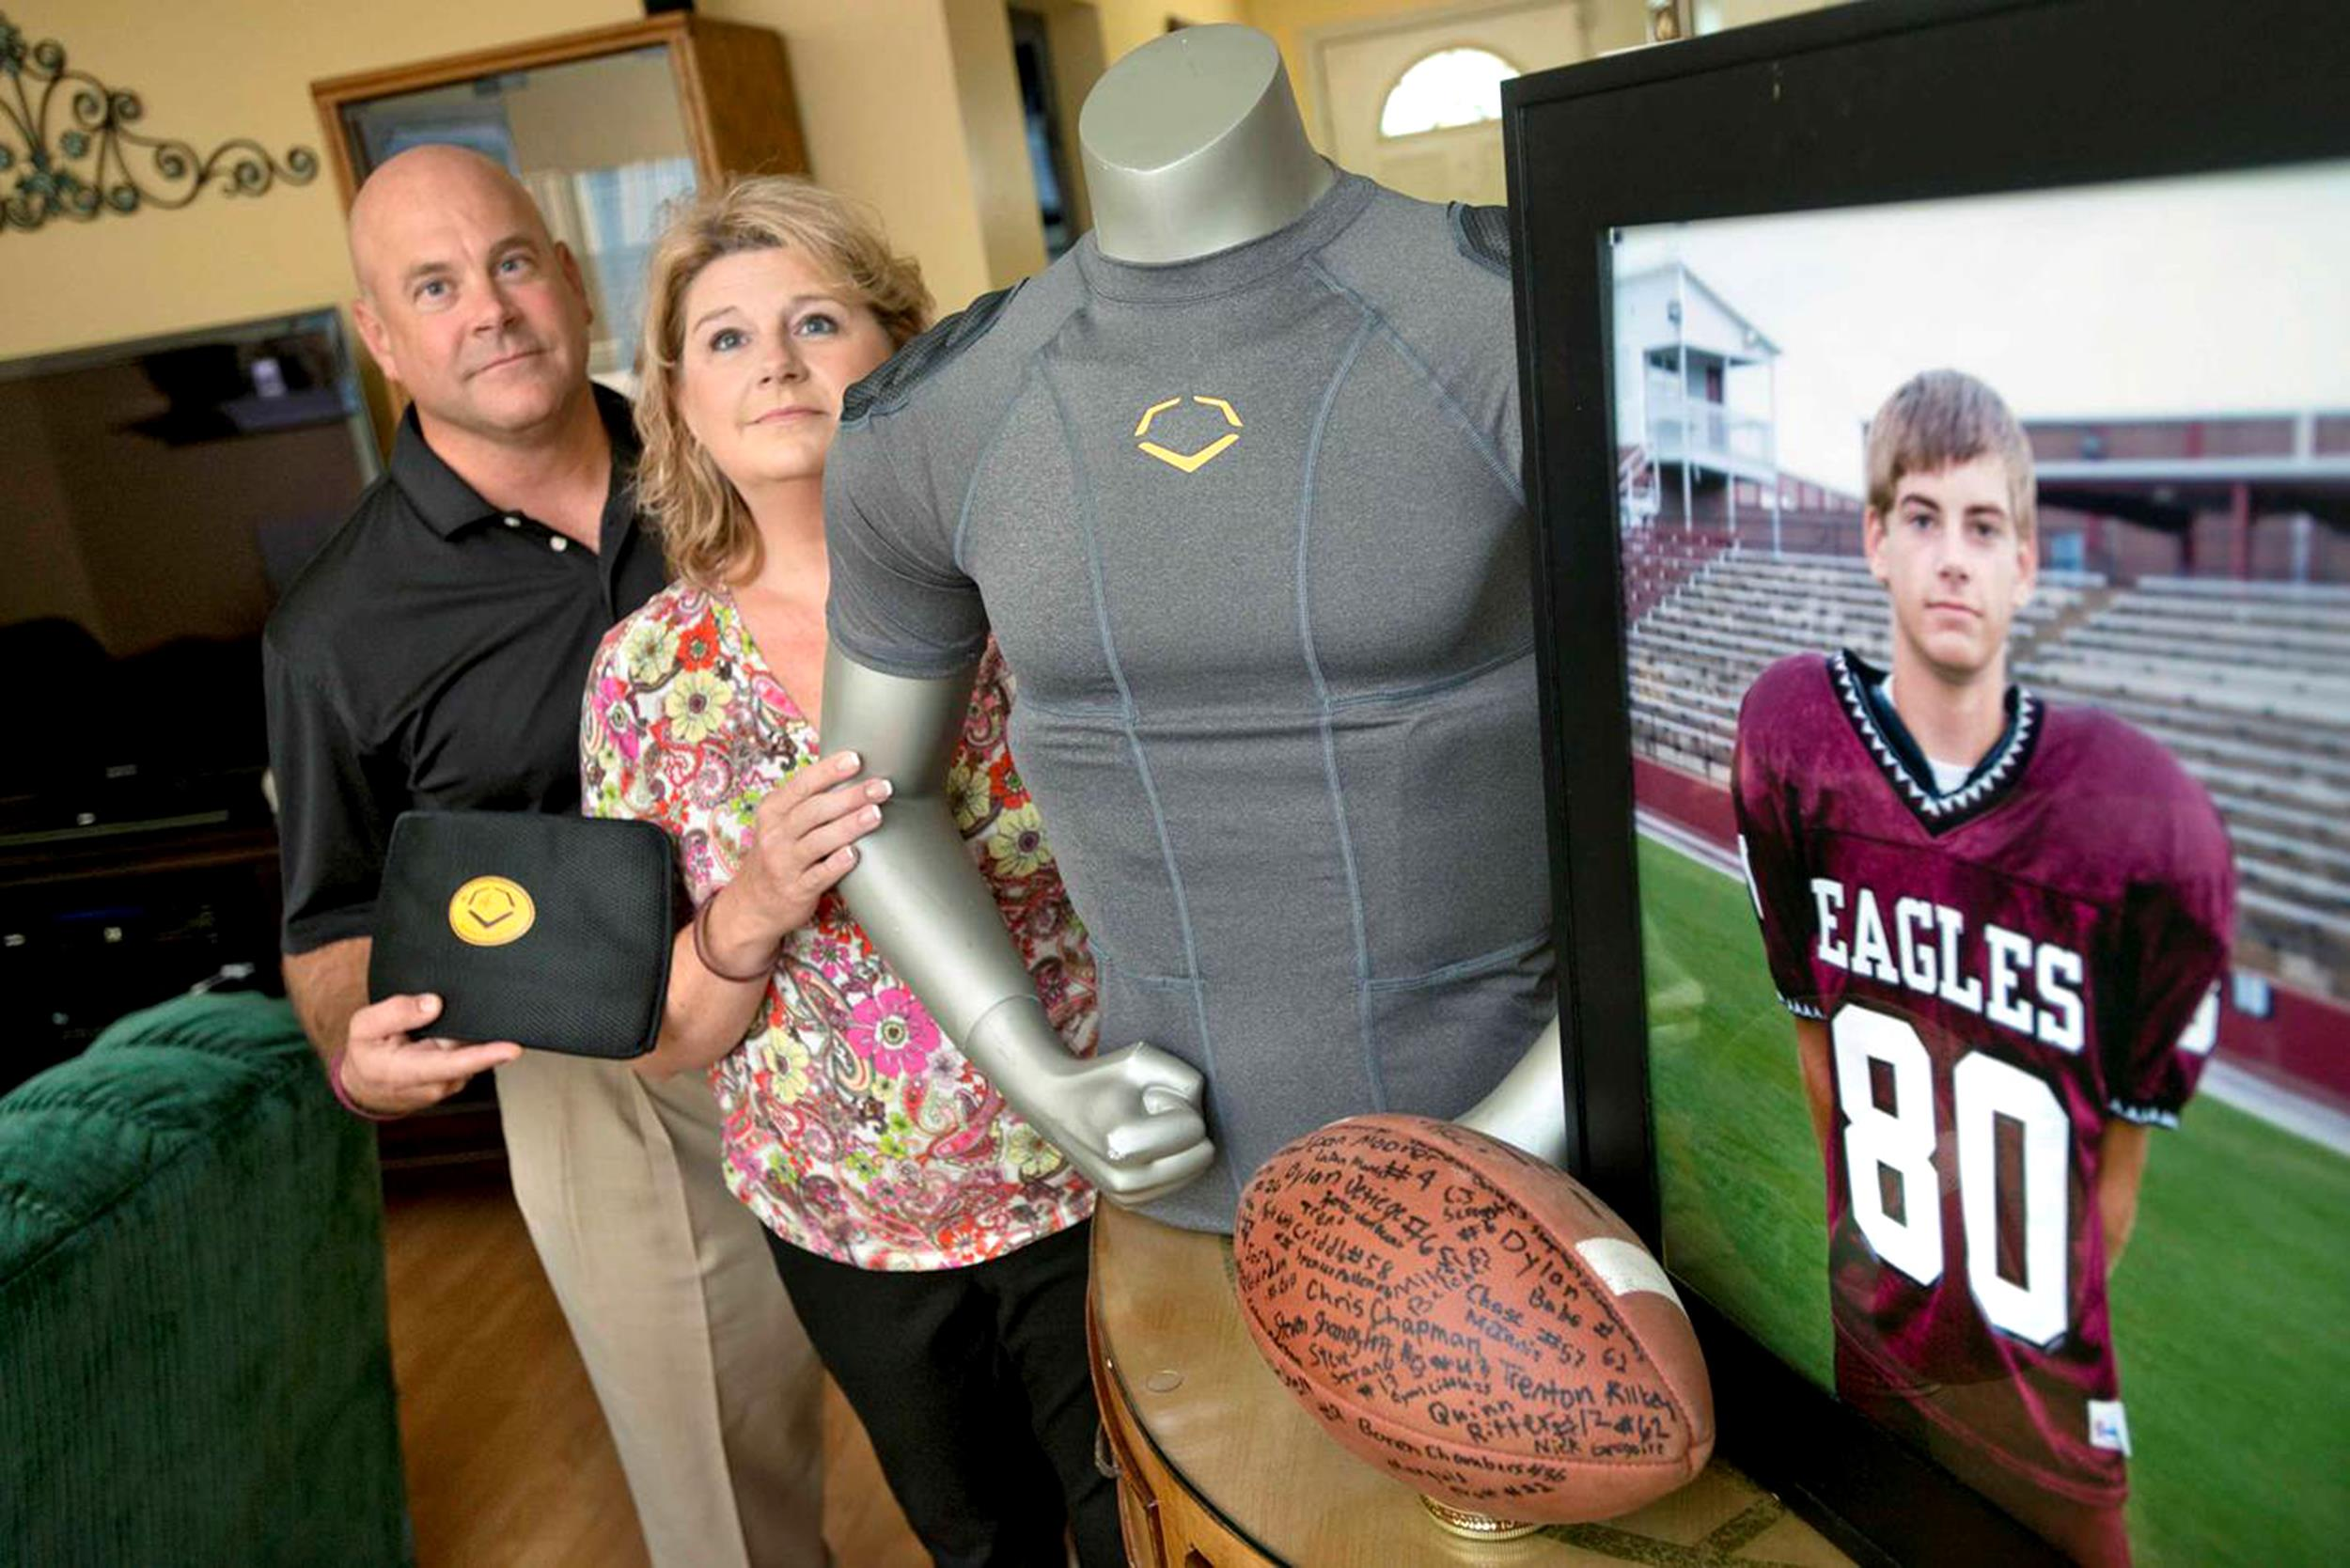 Image: Brian and Kathy Haugen with a photo of their son, Taylor, who died at 15 of a crushed liver after a football hit.